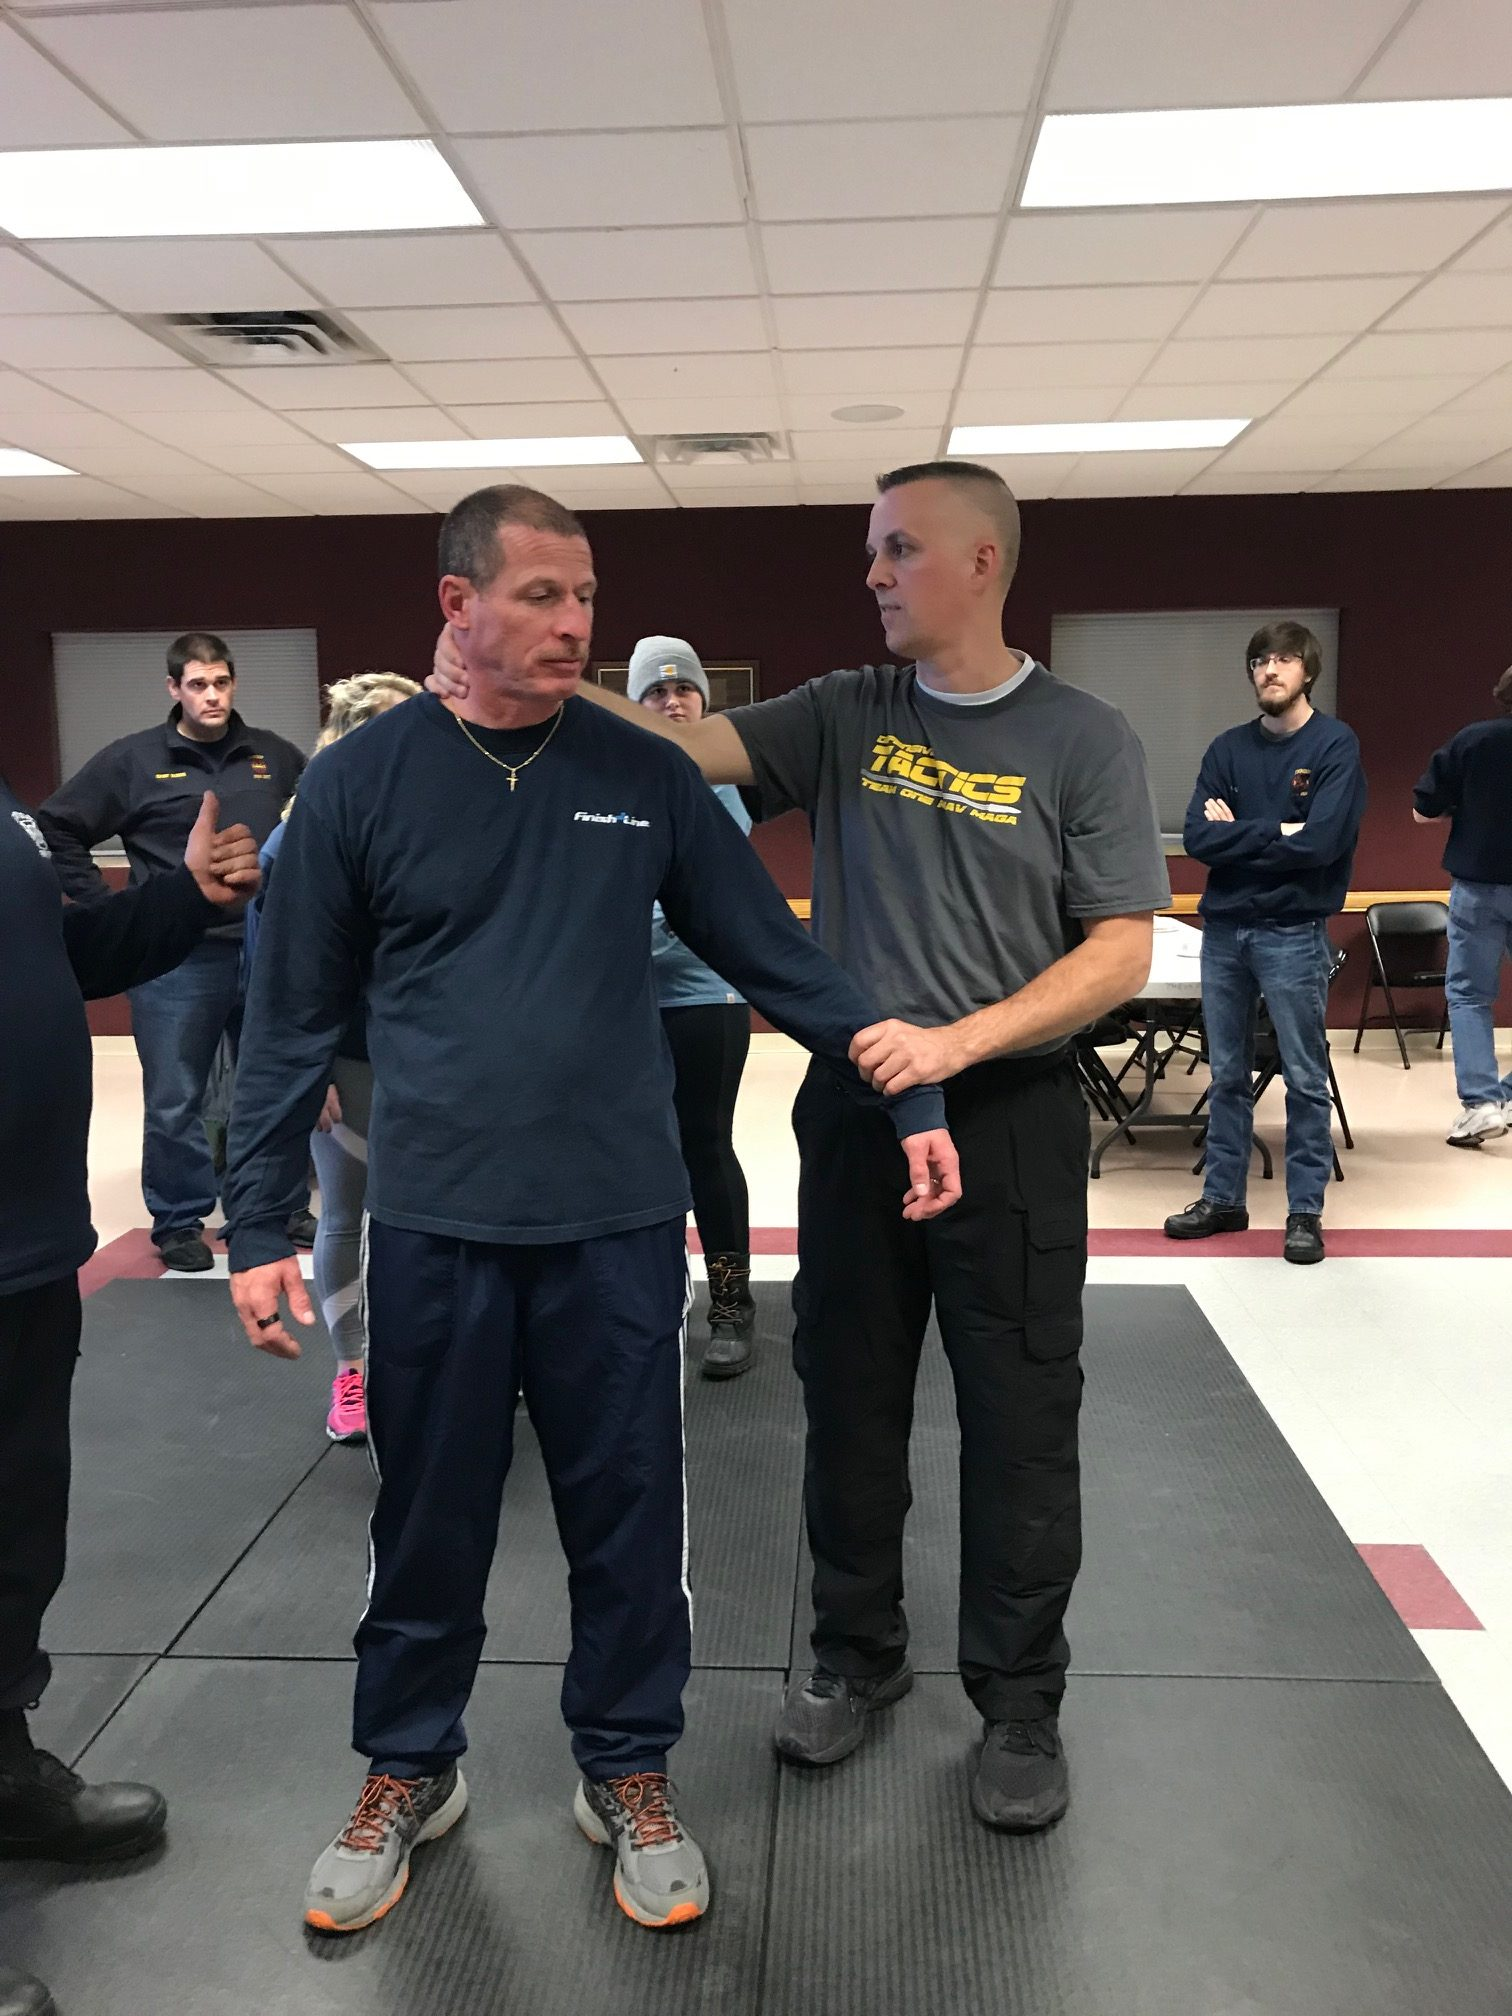 Defensive Tactics Training